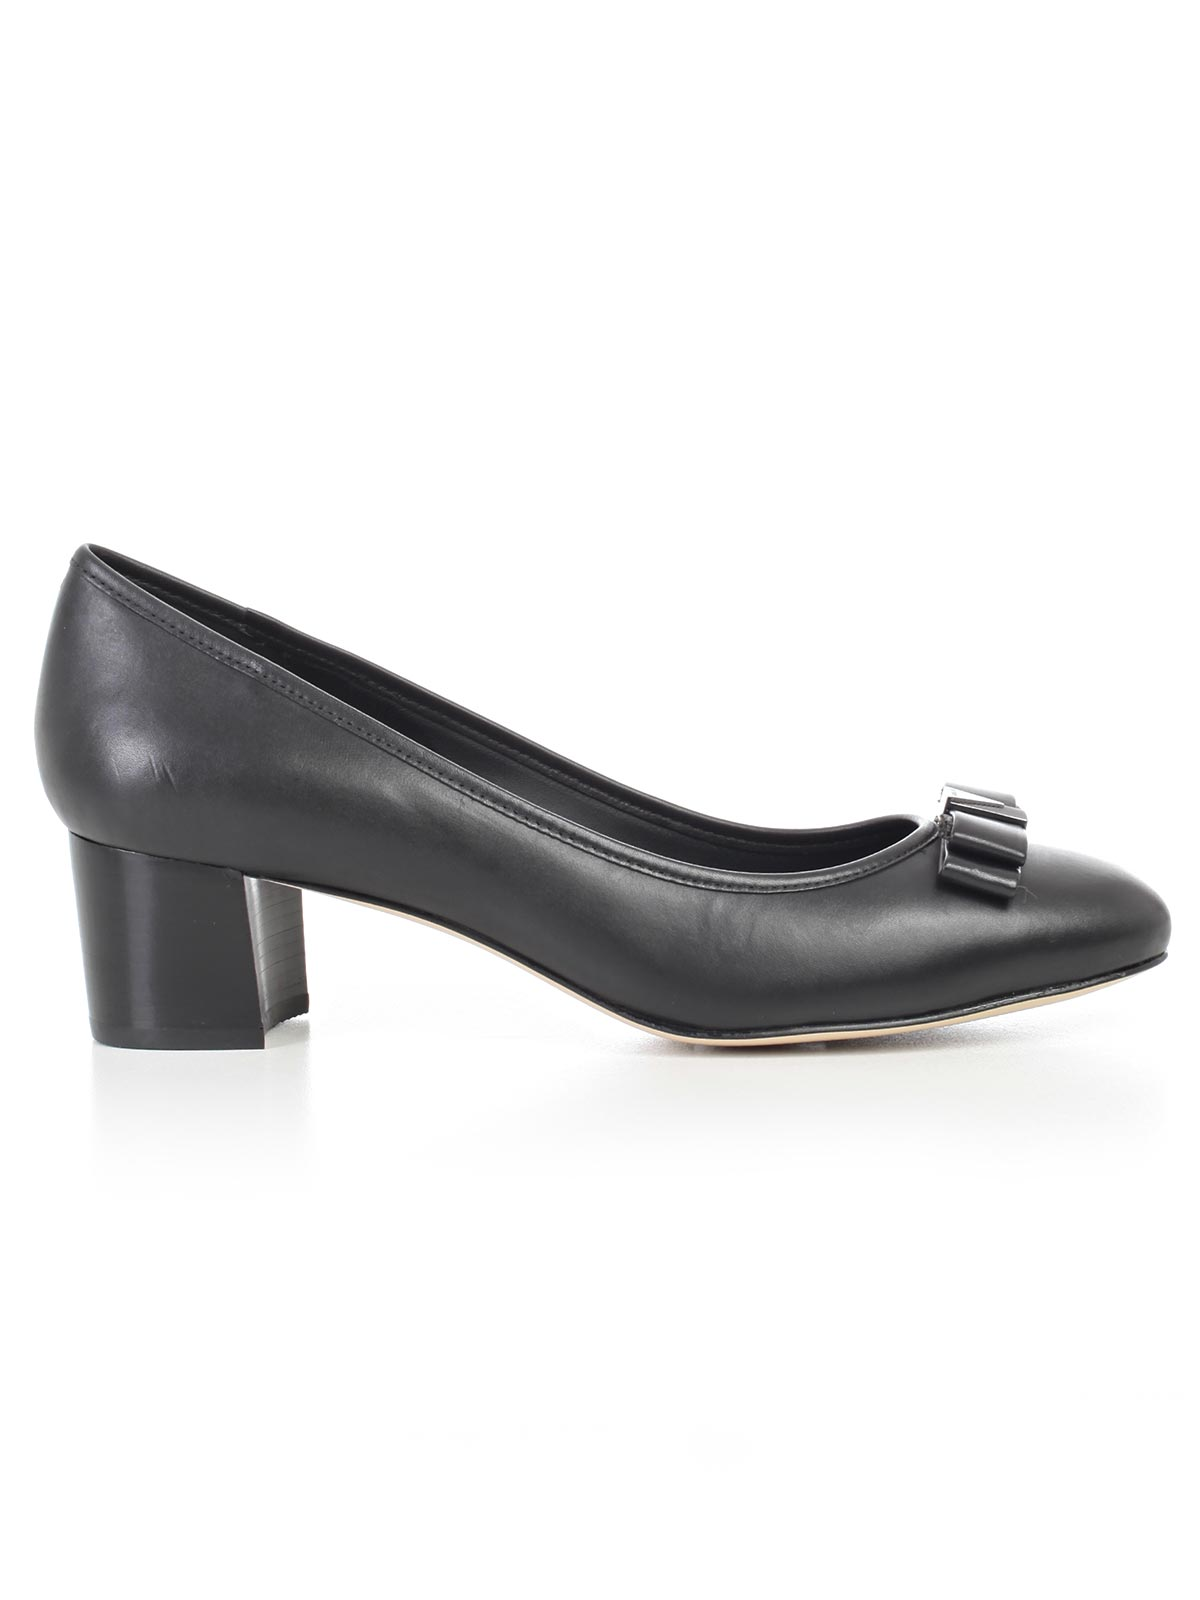 Picture of MICHAEL MICHAEL KORS Pumps